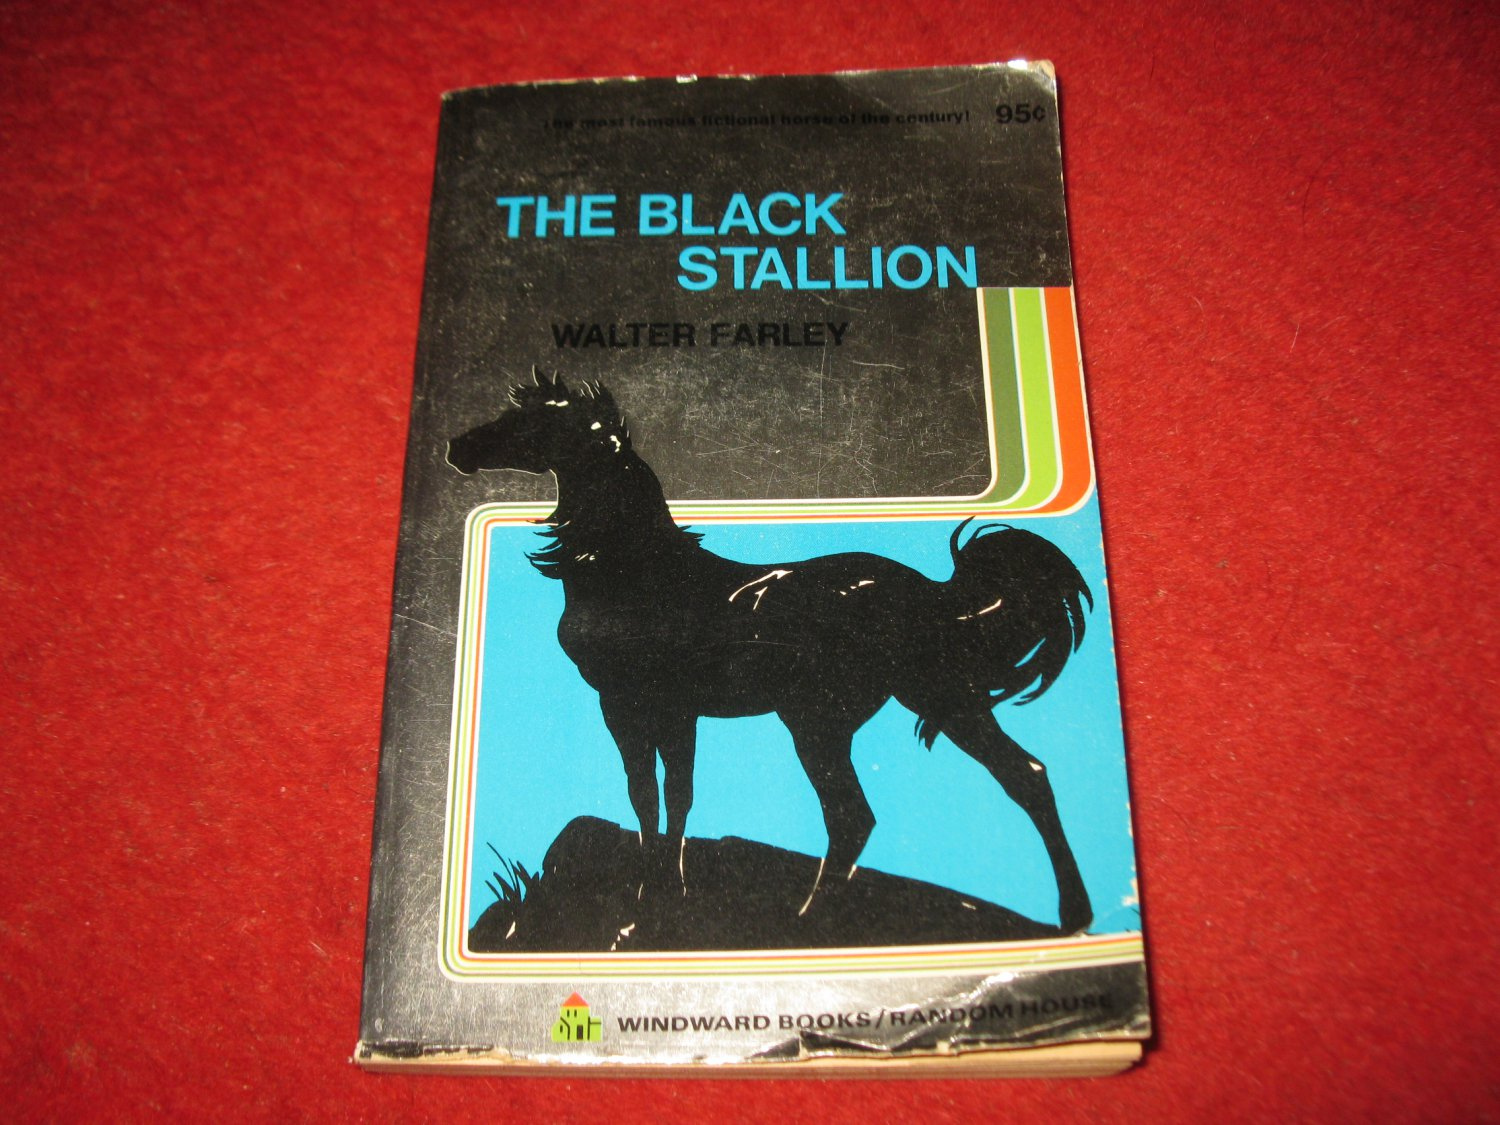 1972 Windward paperback book: The Black Stallion - by Walter Farley - special Silverback ed.